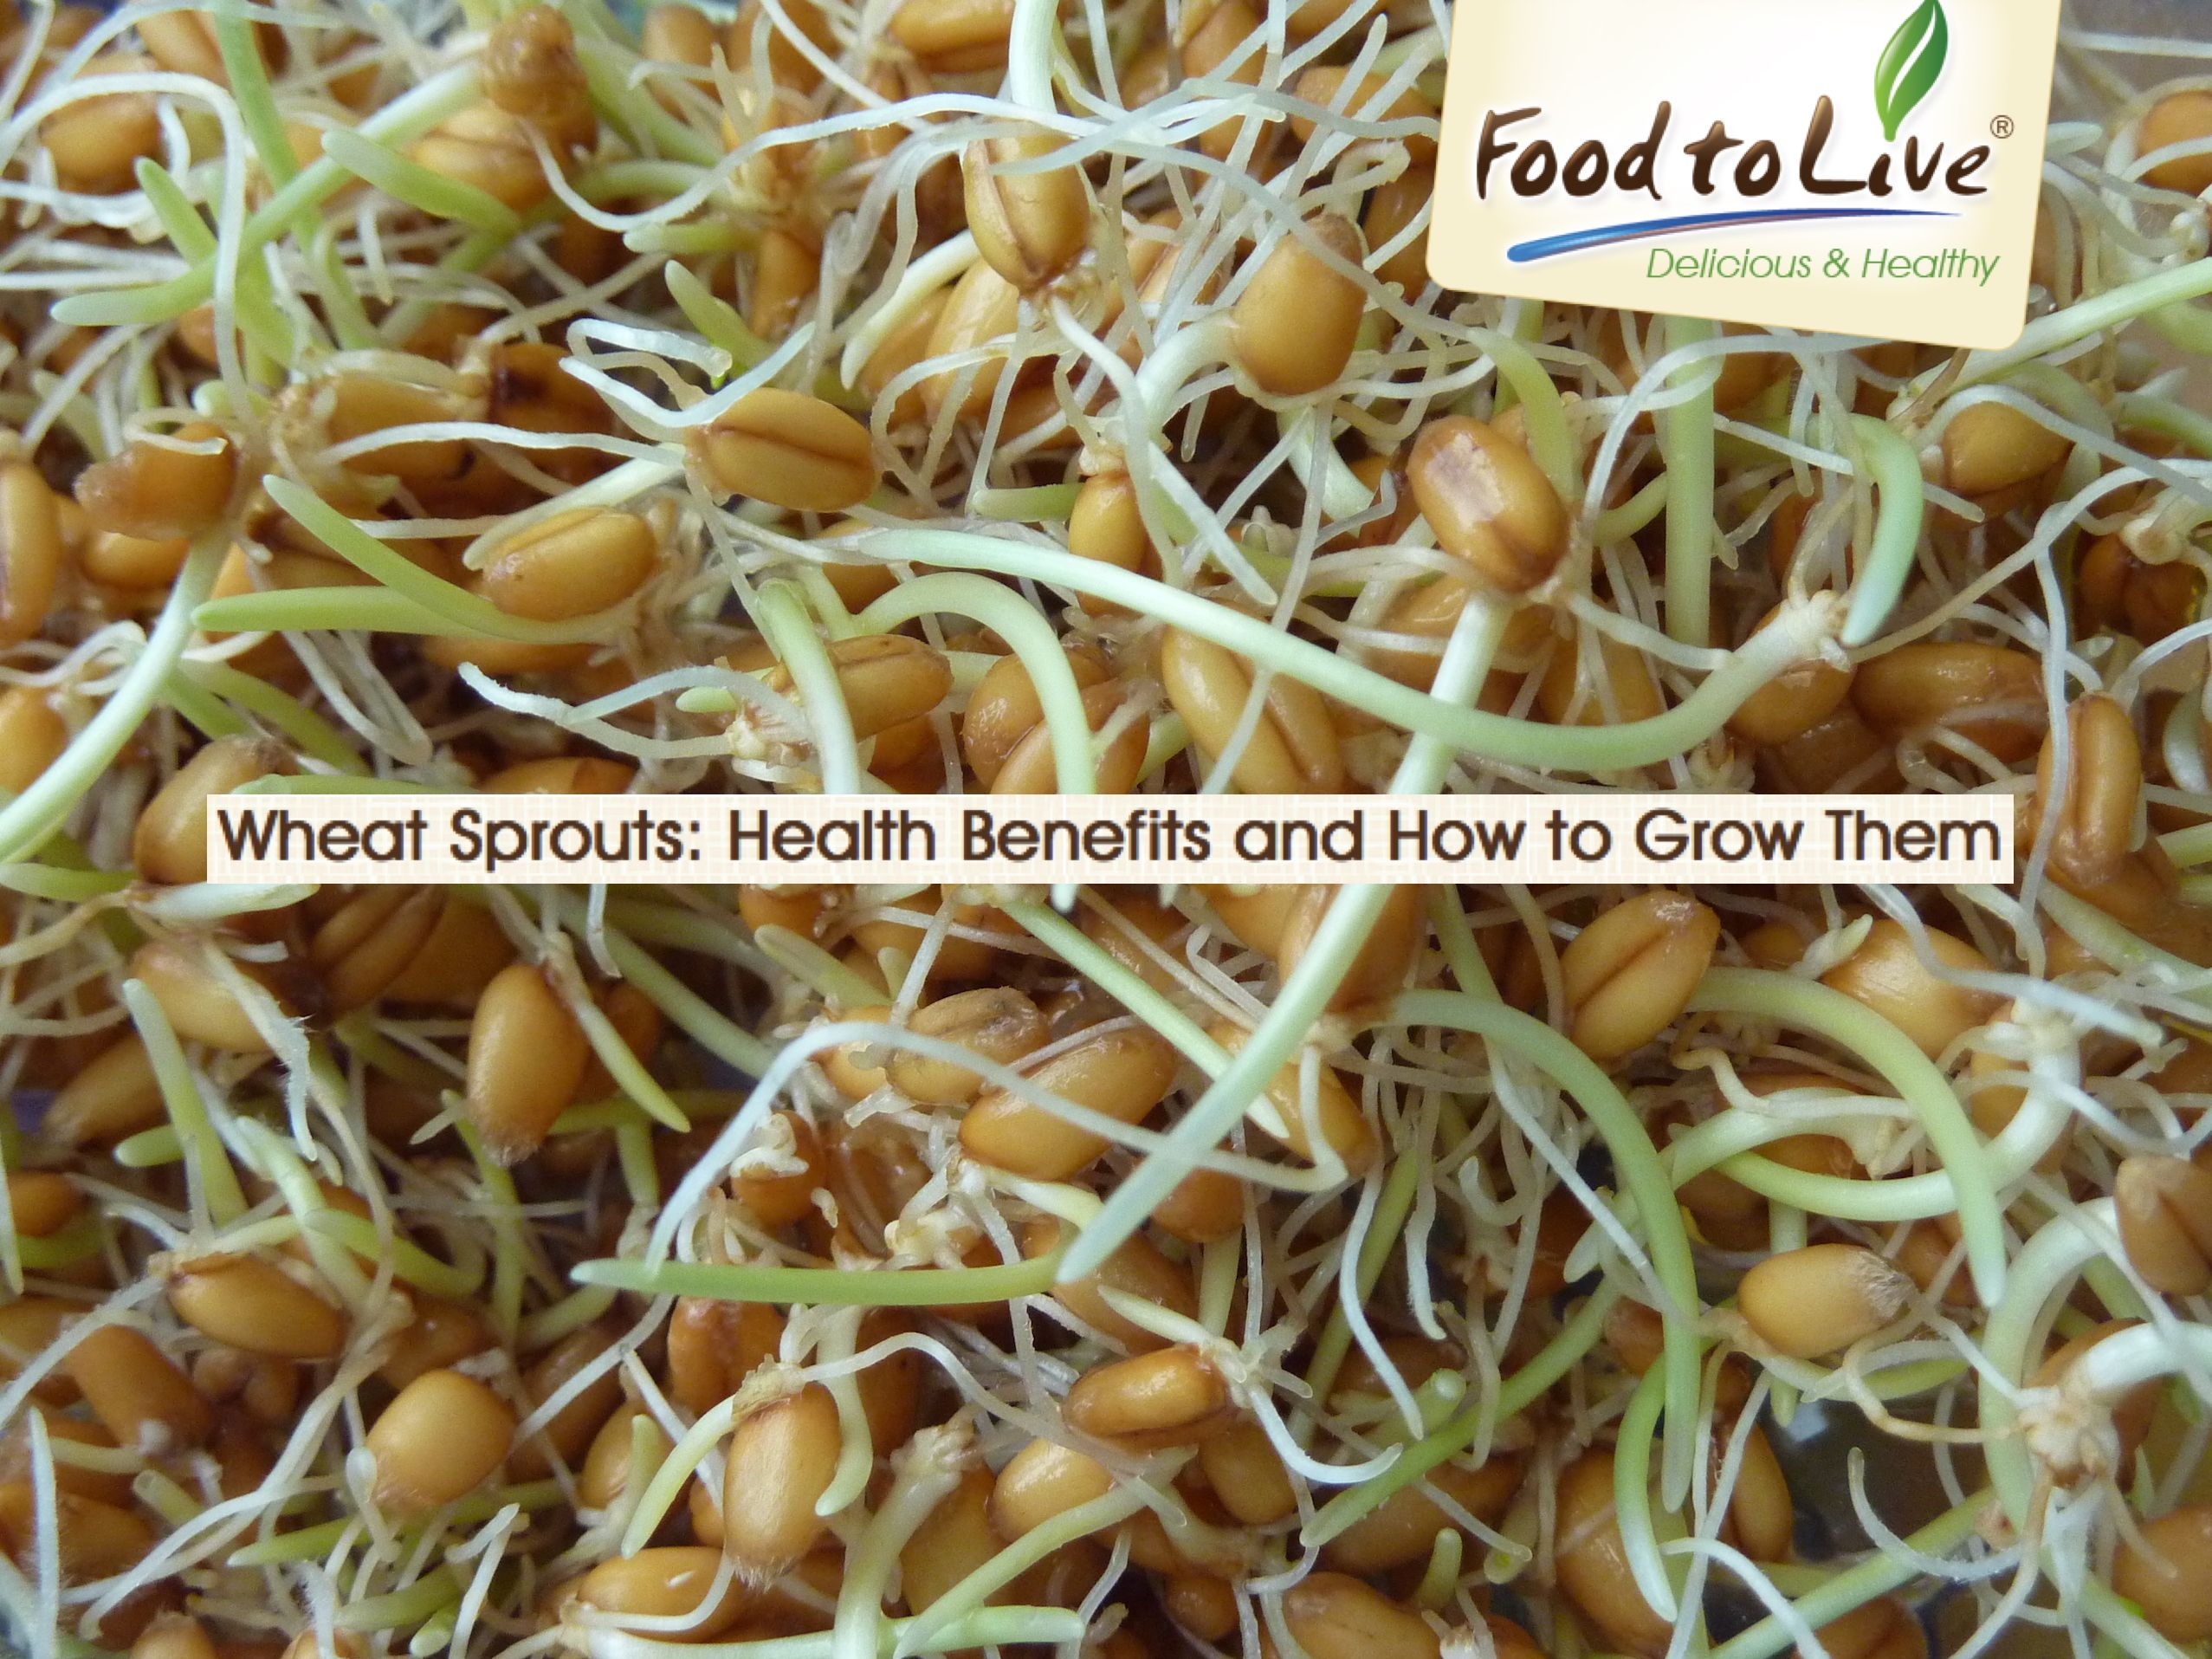 Germinated wheat: cooking process and health benefits